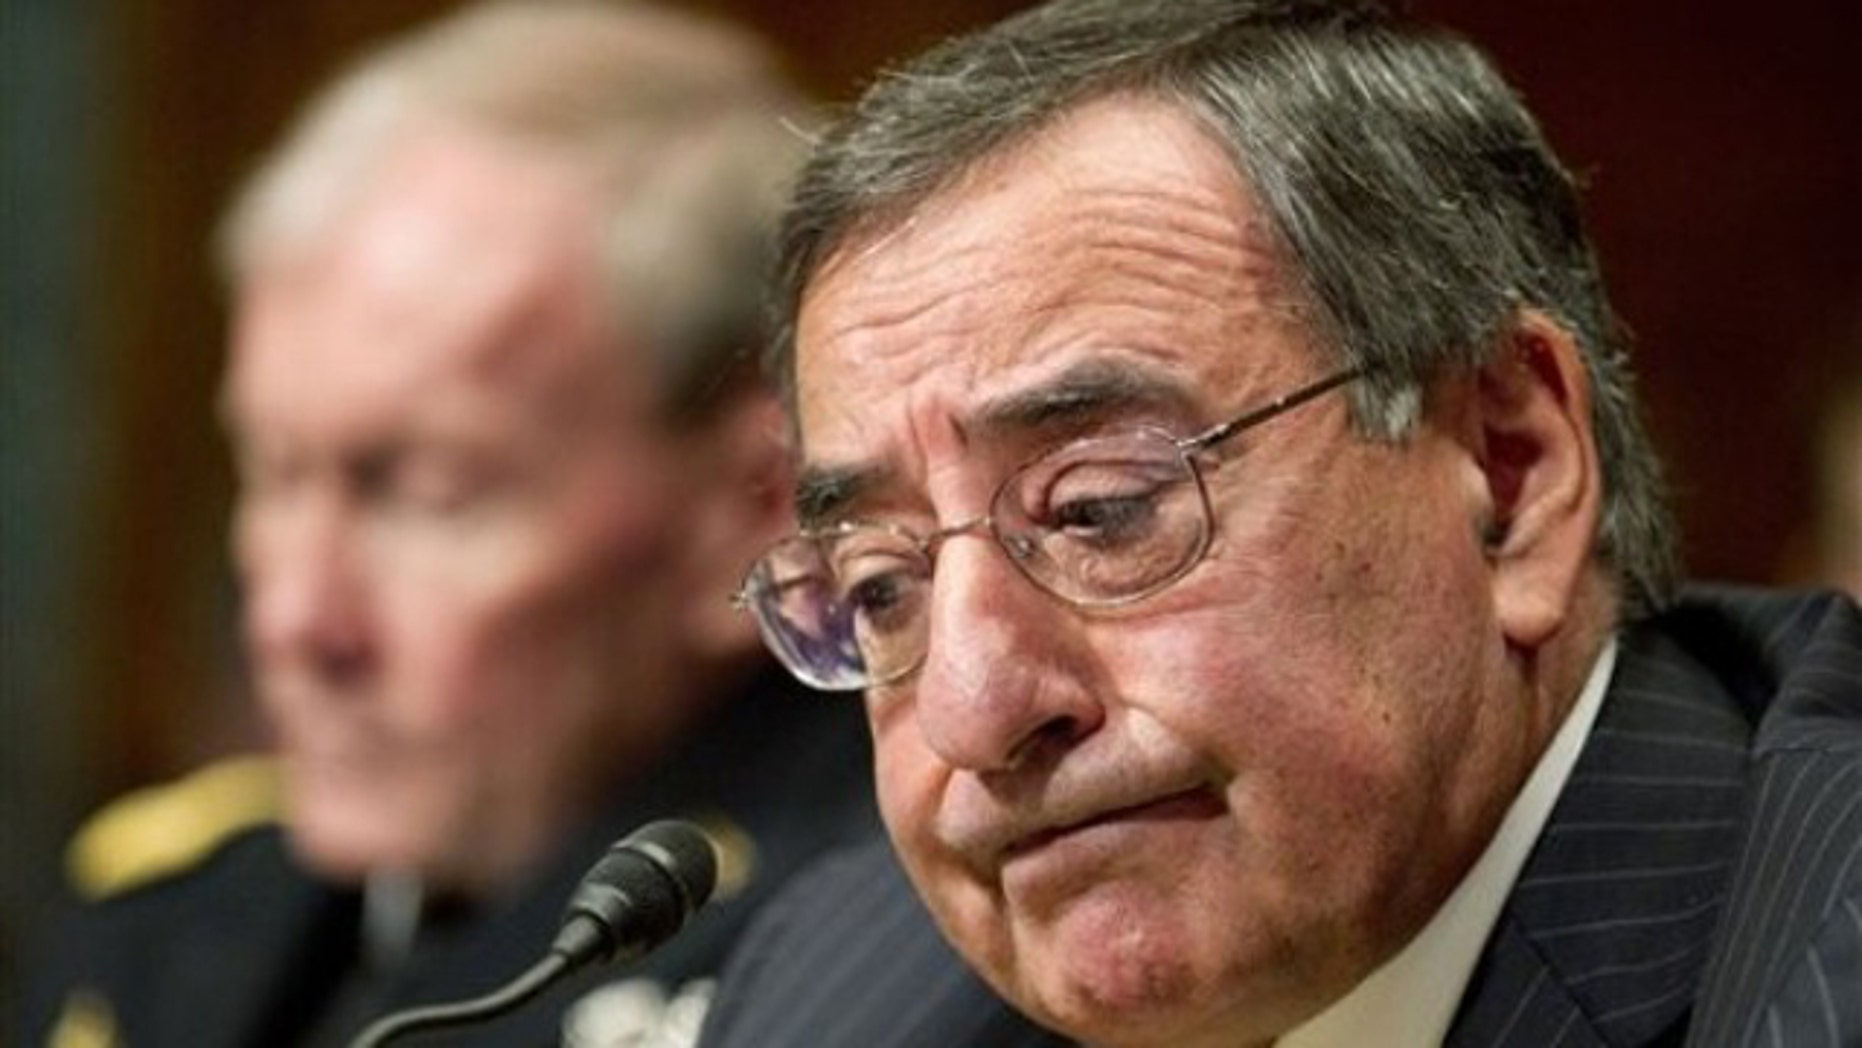 Feb. 28, 2012: Defense Secretary Leon Panetta, accompanied by Joint Chiefs Chairman Gen. Martin Dempsey, testifies on Capitol Hill before the Senate Budget Committee on the Defense Department's fiscal 2013 budget.